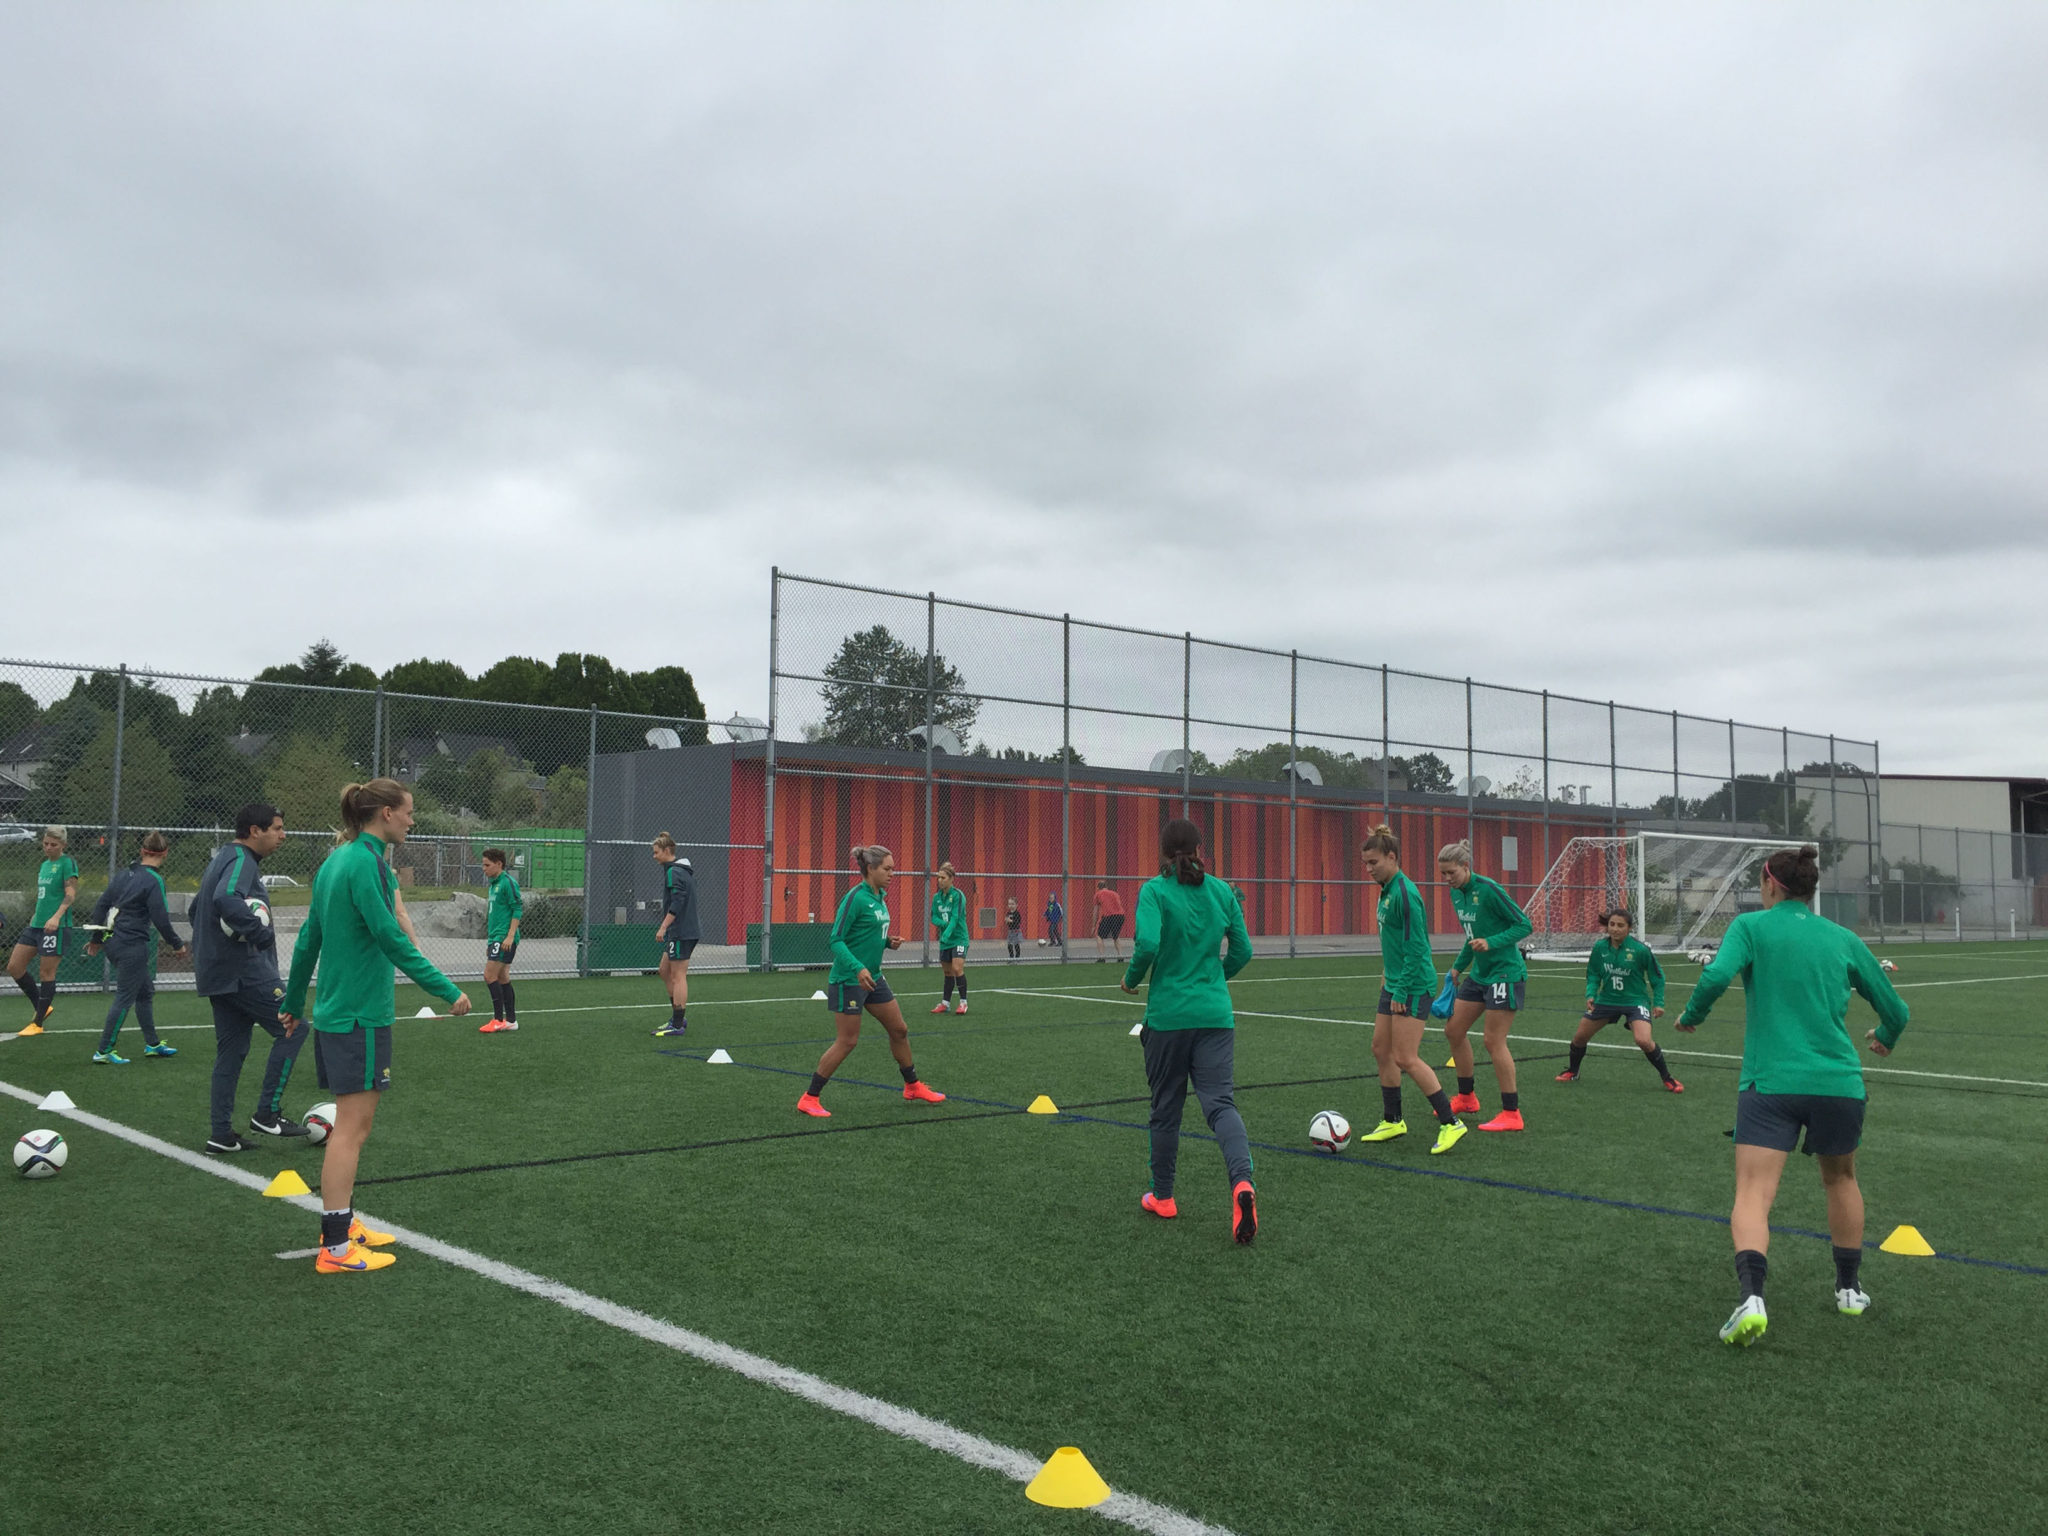 Australia trains in Vancouver ahead of the World Cup. (Photo Copyright Harjeet Johal for The Equalizer)